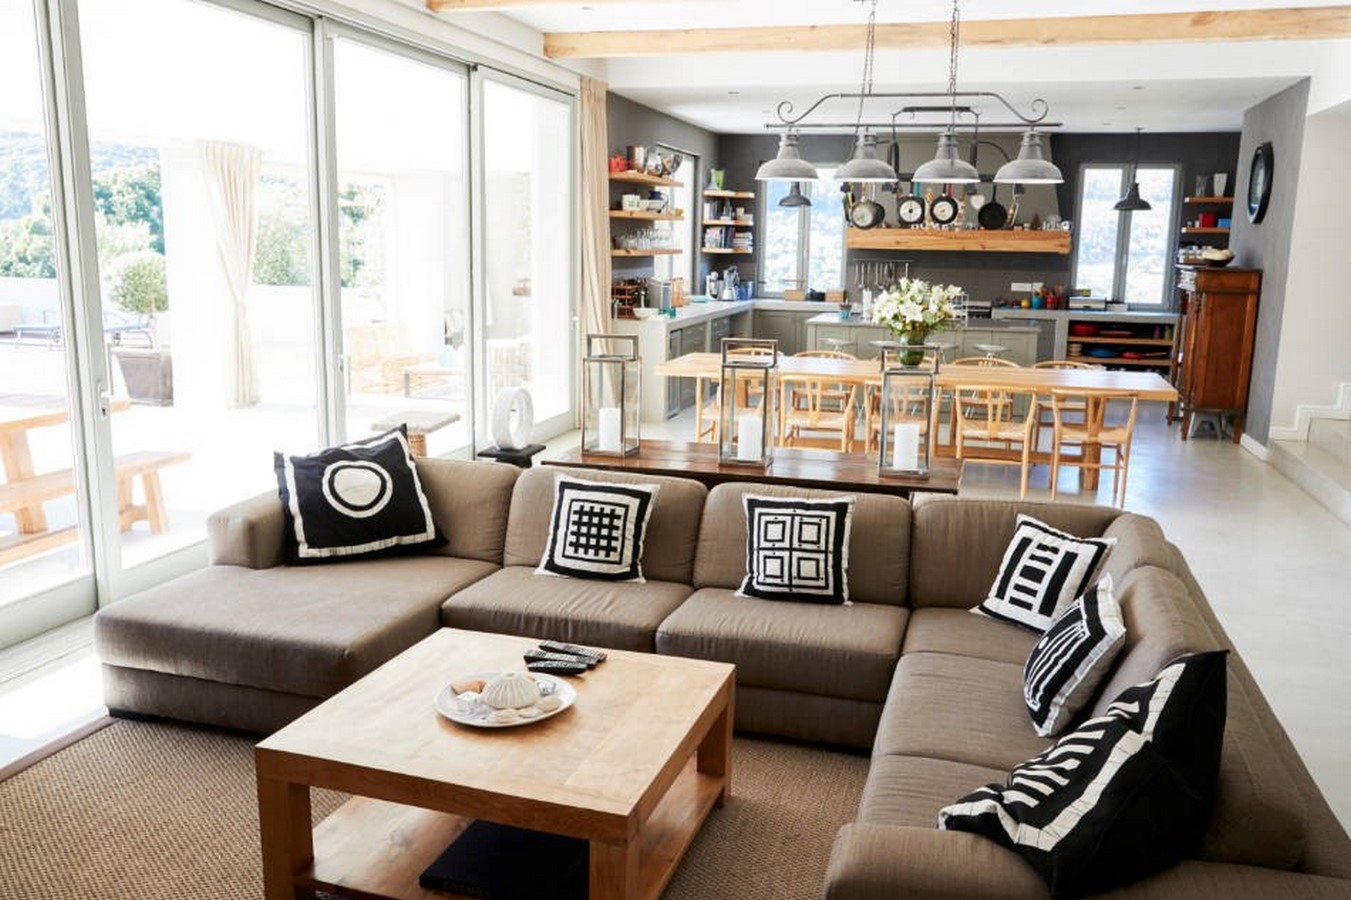 10 Tips to Renovate your House without hampering your budget - Sheet5